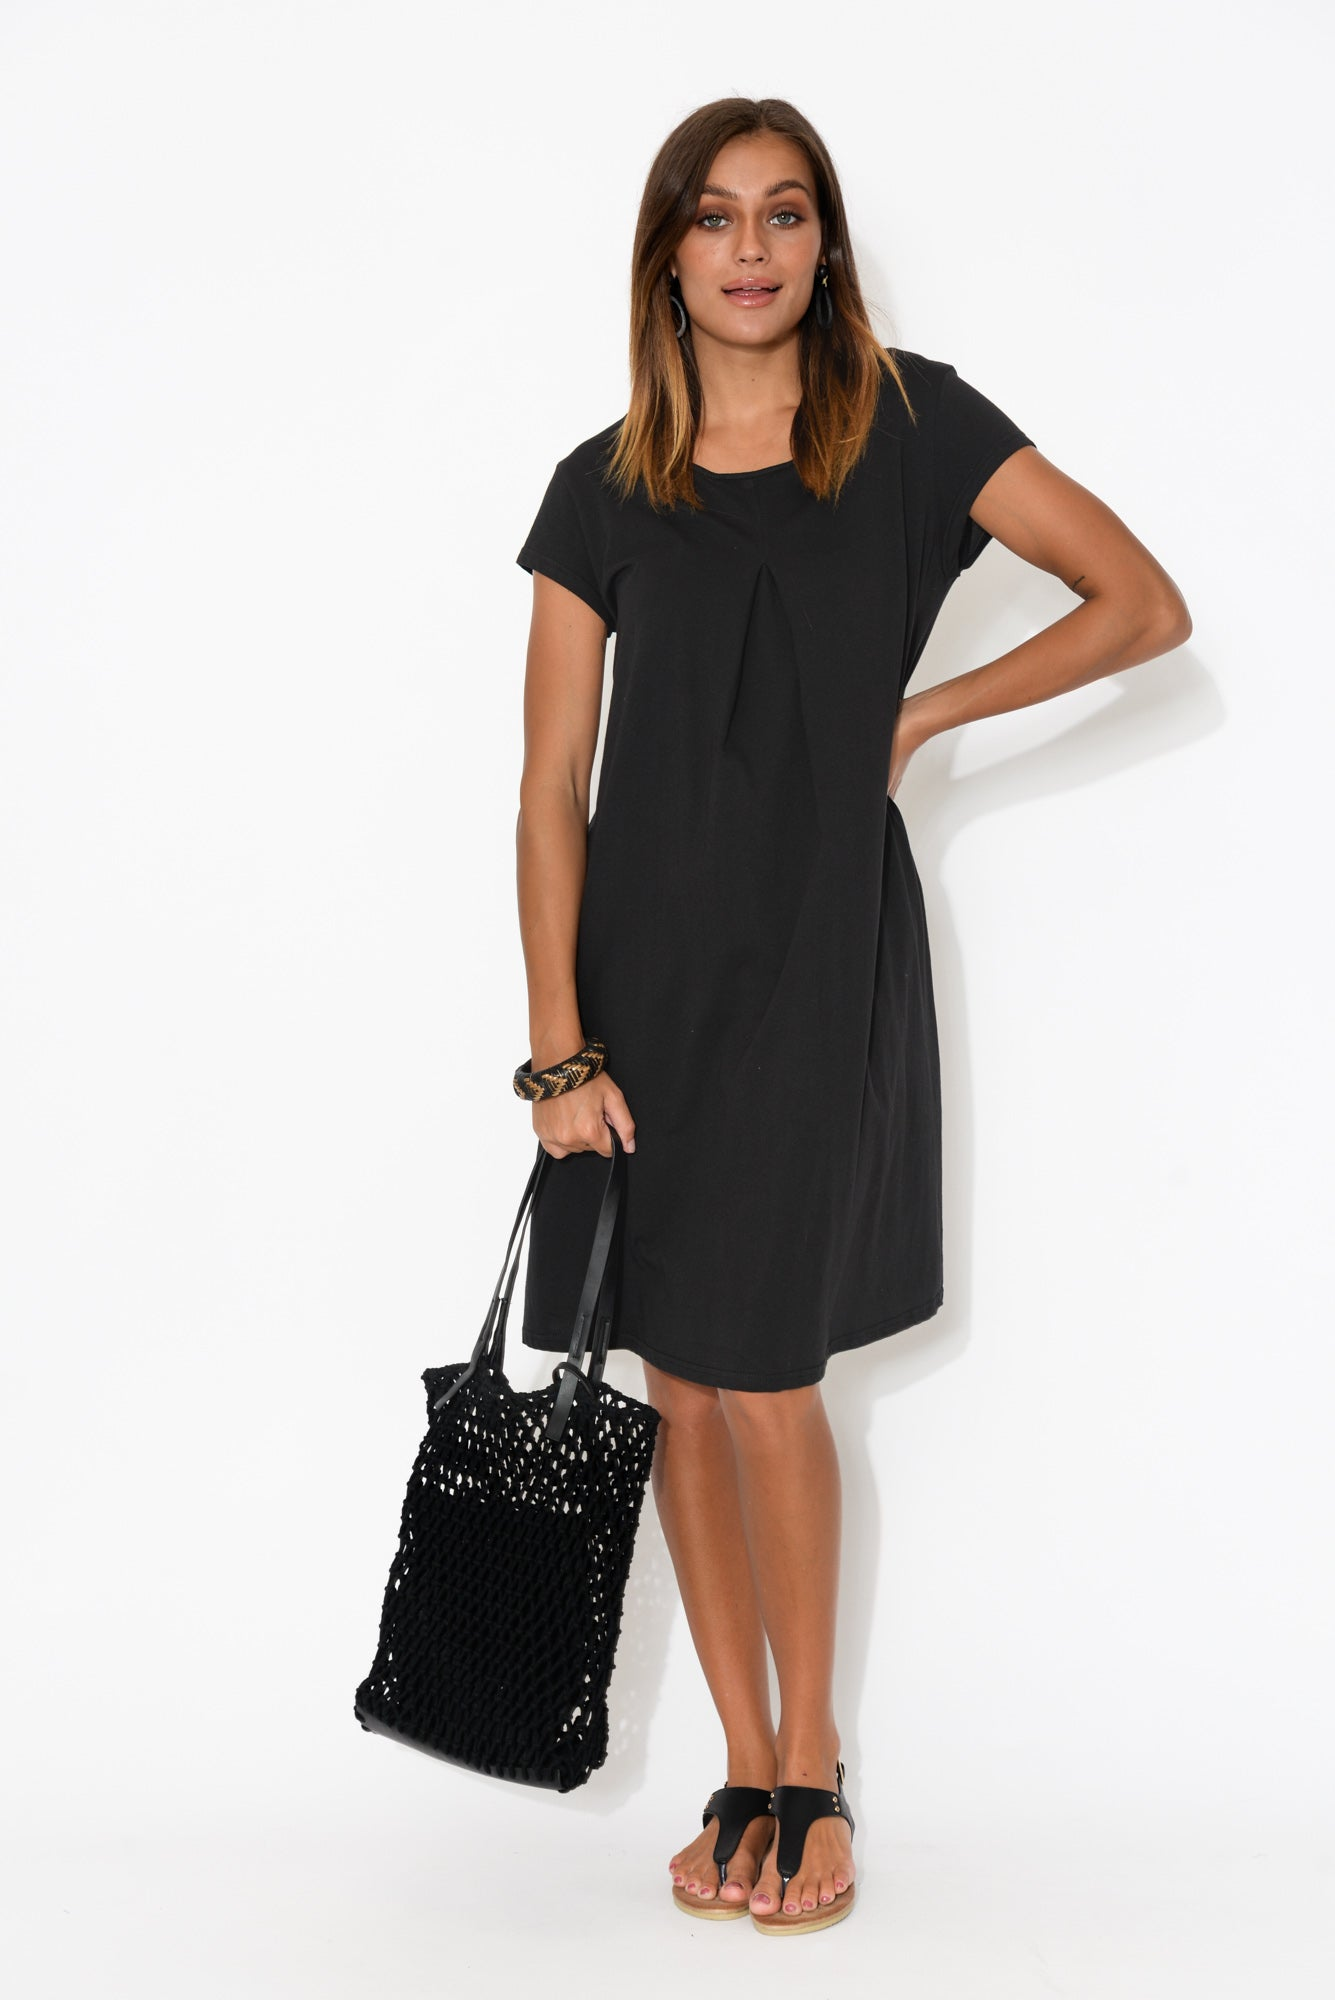 Allende Black Cotton Swing Dress